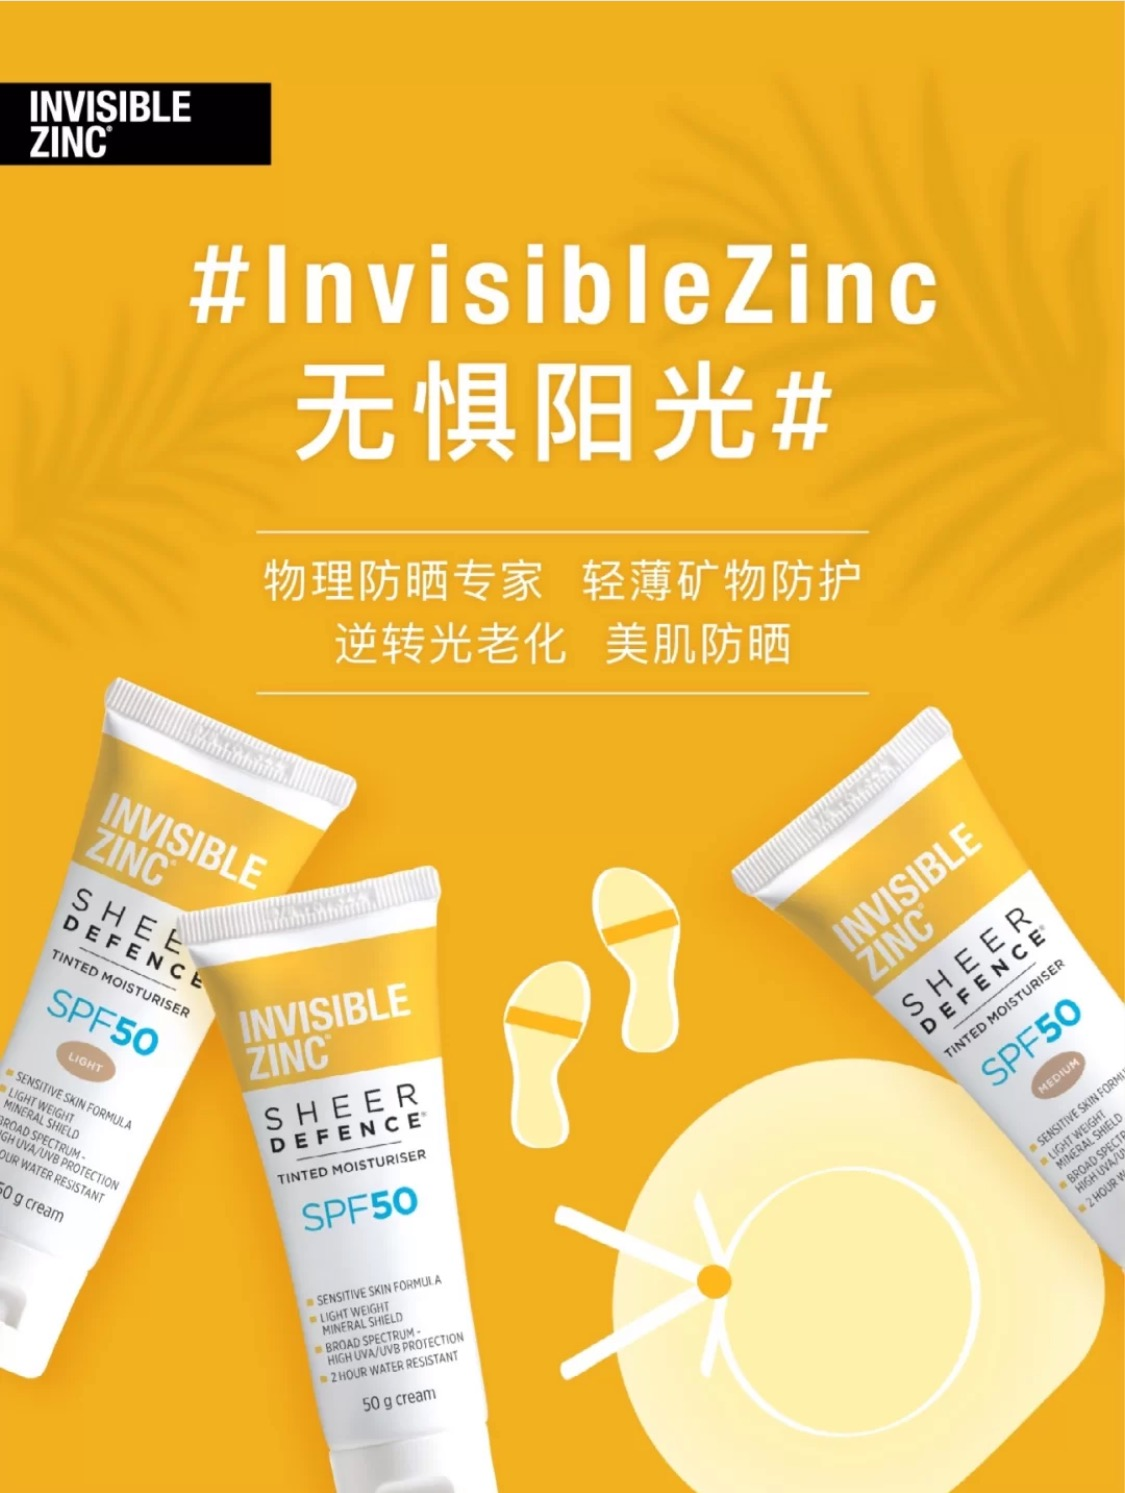 Spf50 non greasy Australian invisible zinc high power physical barrier